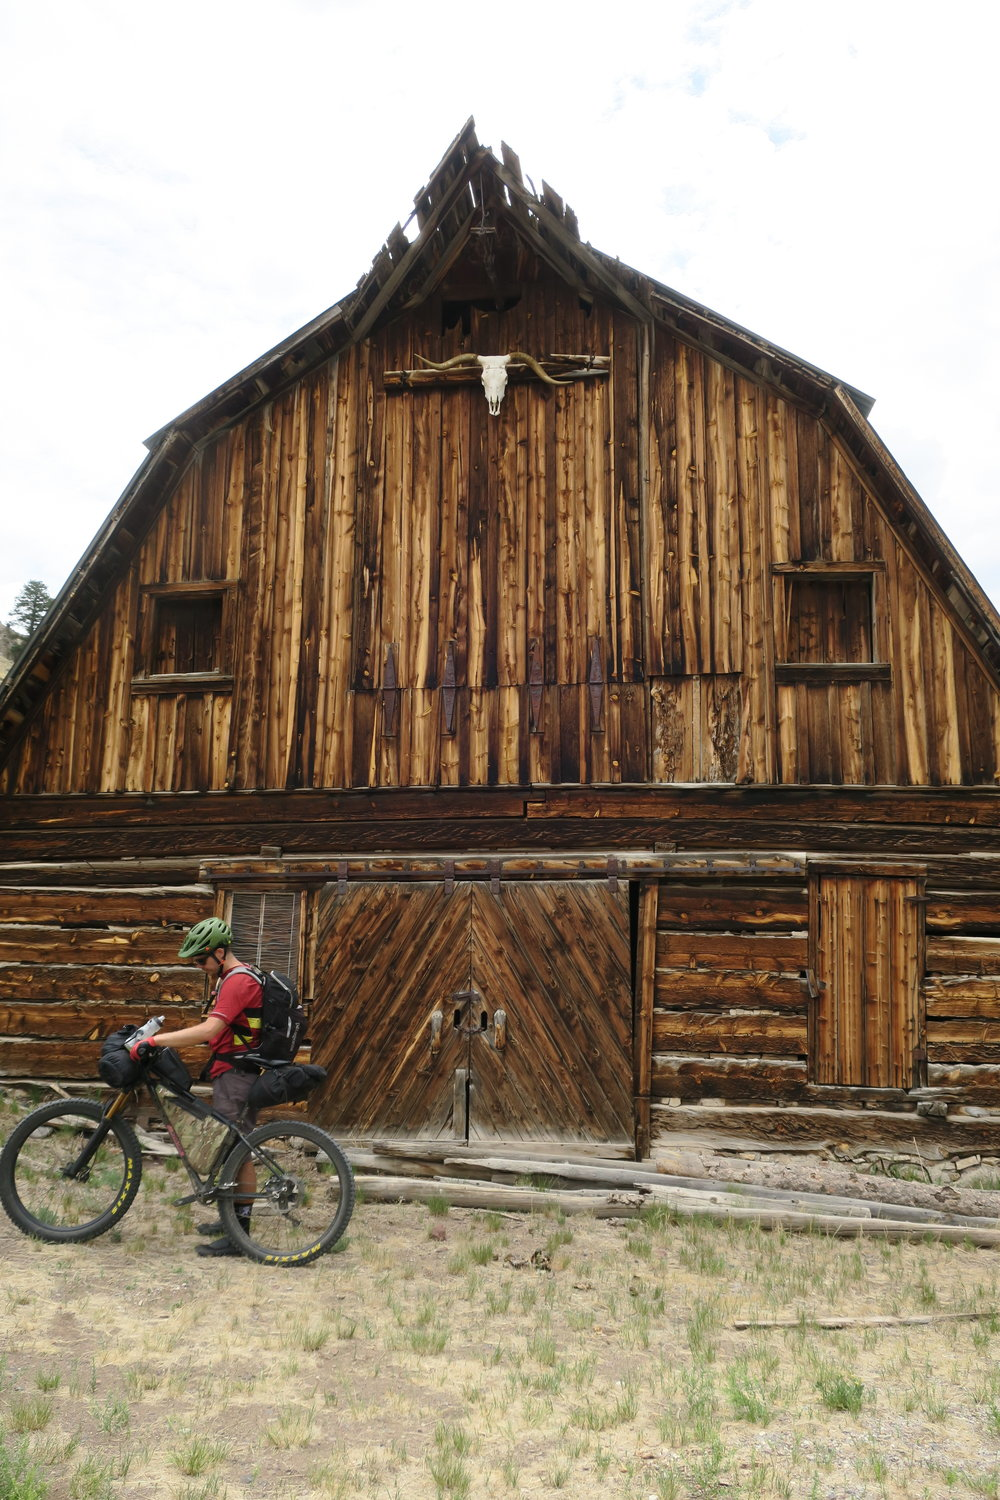 Cool barn near Cathedral, CO on the La Garita Wilderness detour